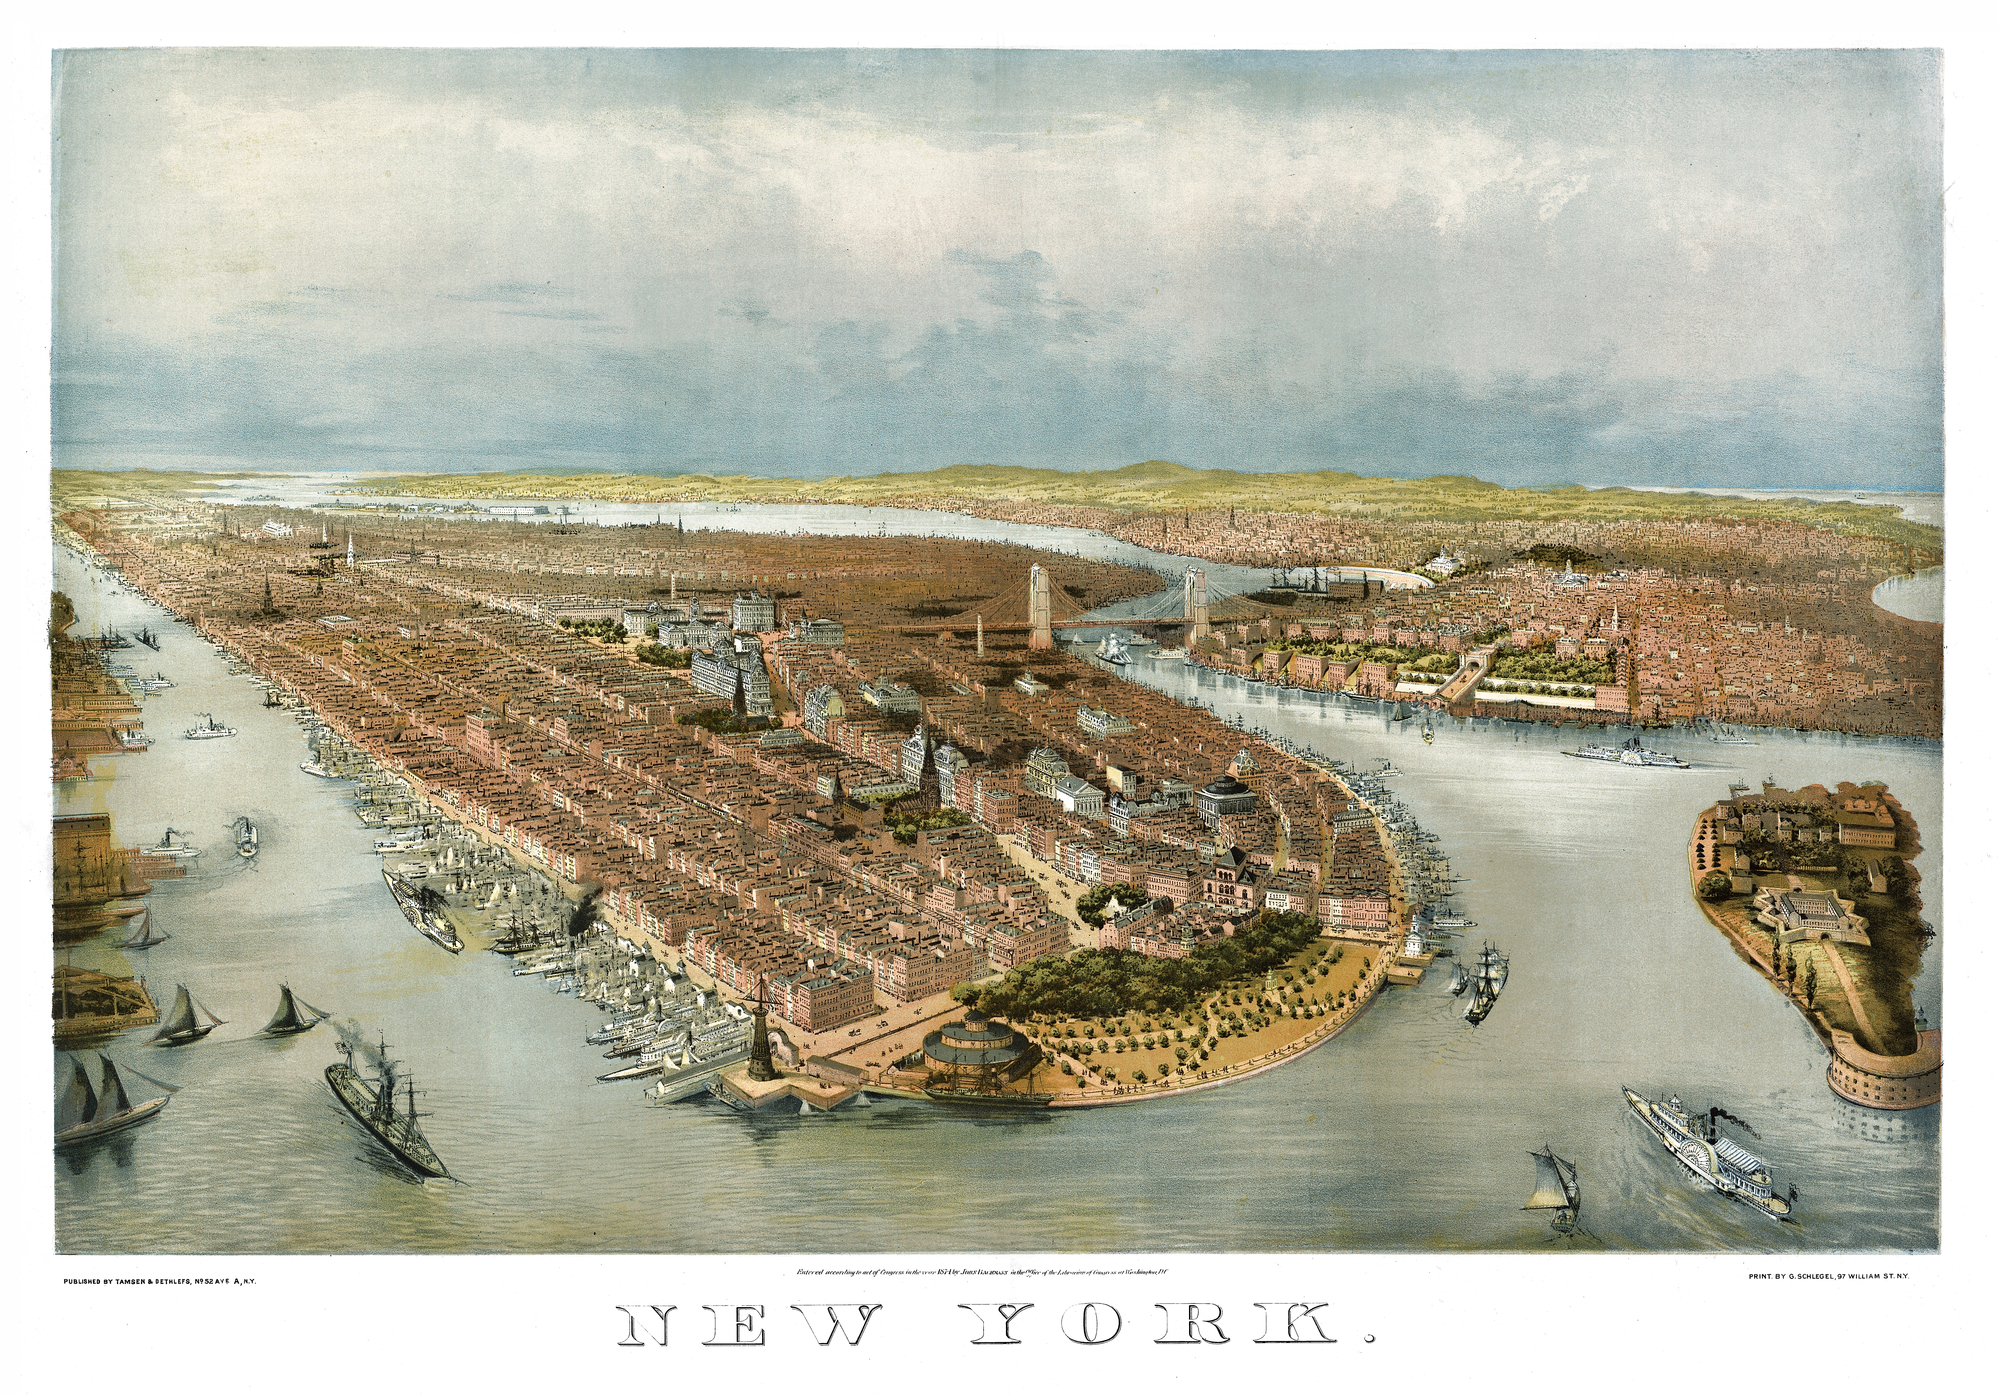 Old aerial view of New York. By John Bachmann and George Schlegel. Publ. Tamsen & Dethlefs New York, 1874